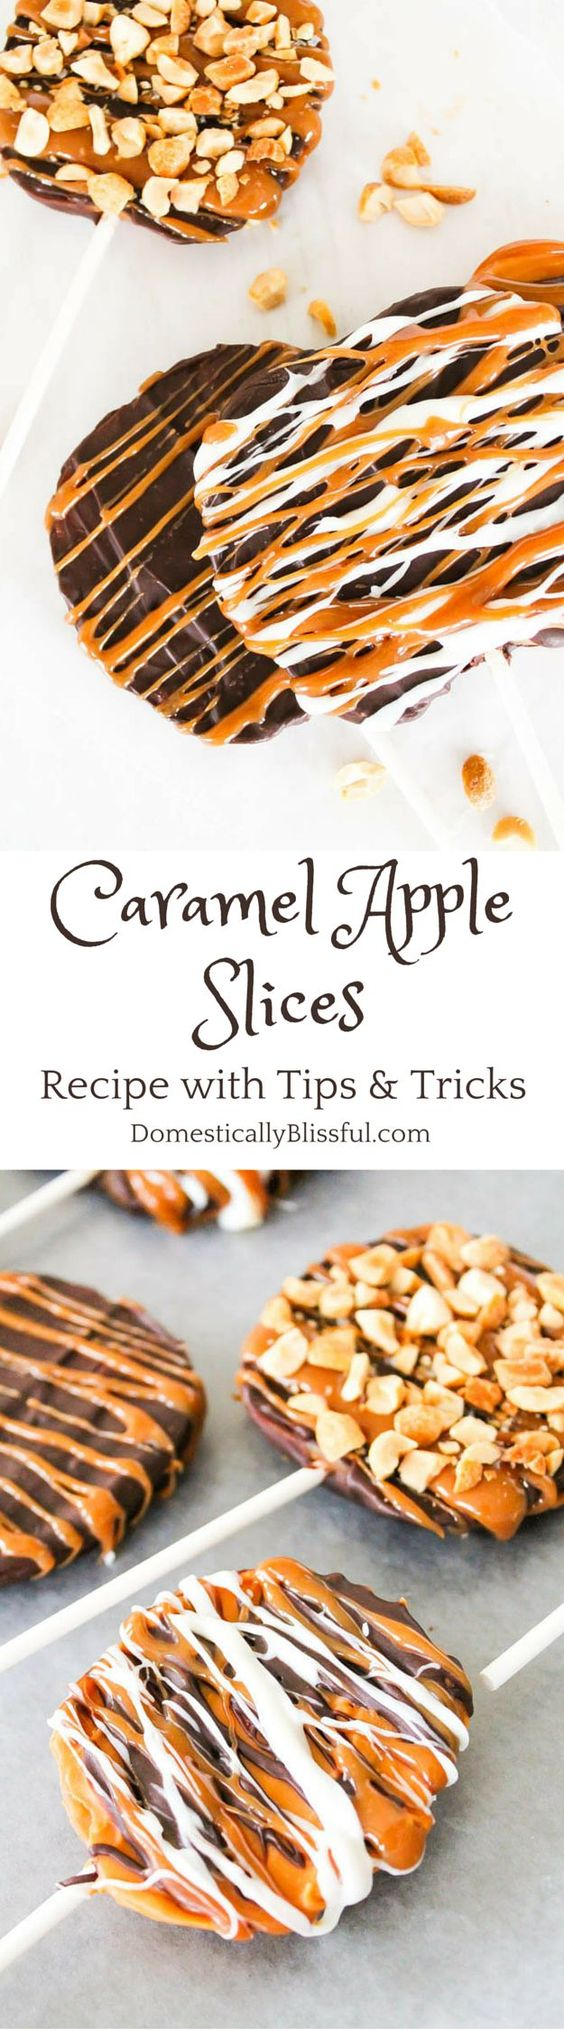 Caramel Apple Slices - The perfect Fall and Winter Treats Recipe with tips and tricks! | Domestically Blissful